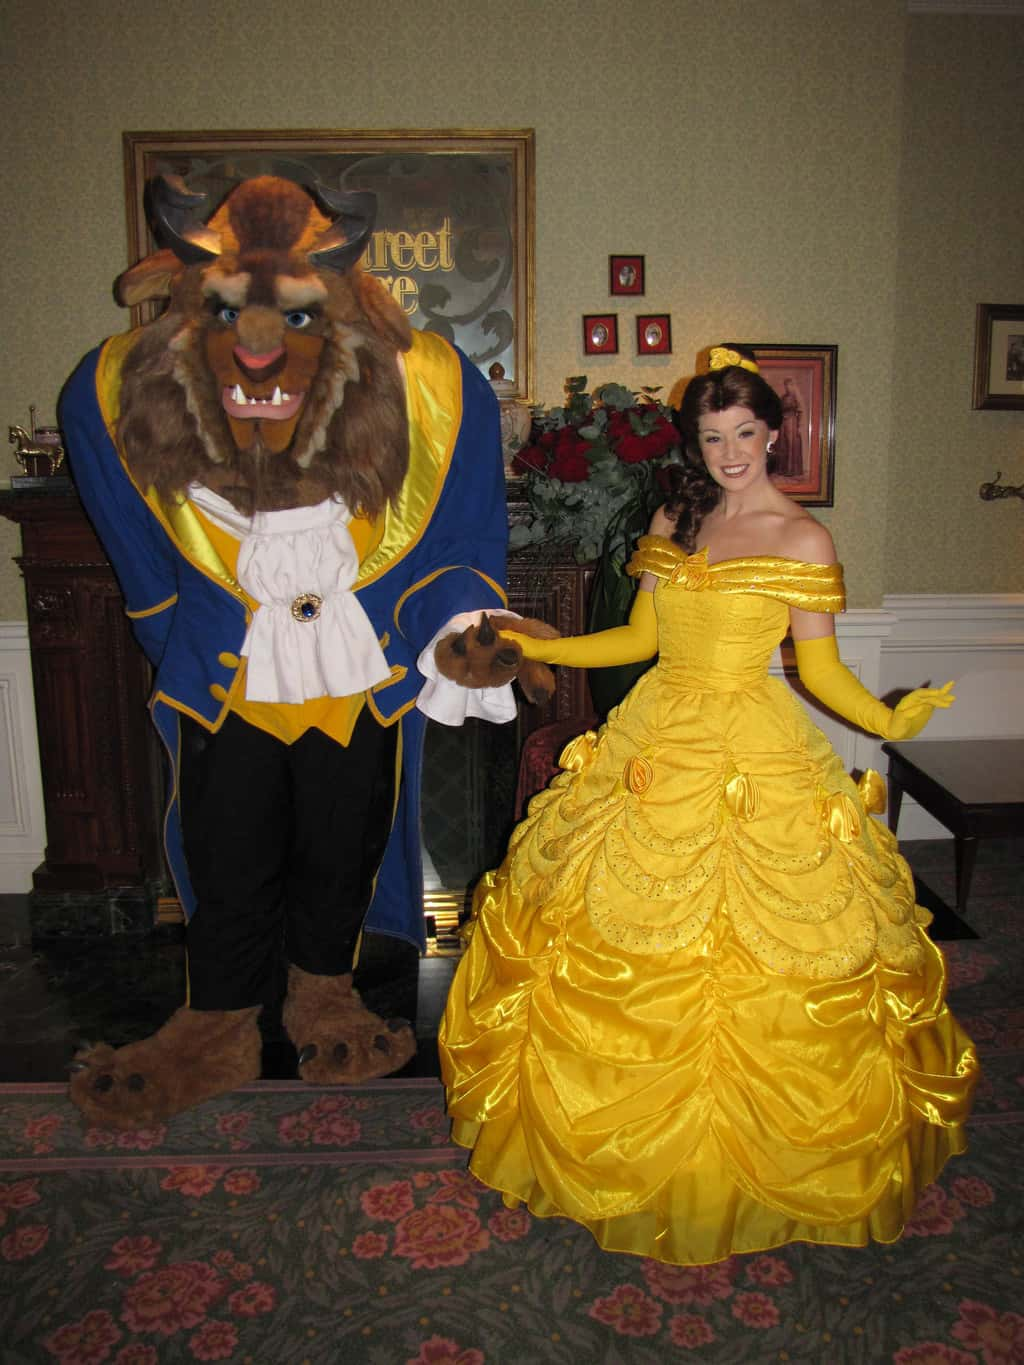 Belle and the Beast doing a special Meet'n'Greet during Valentine's Day 2010 at the Disneyland Hotel.